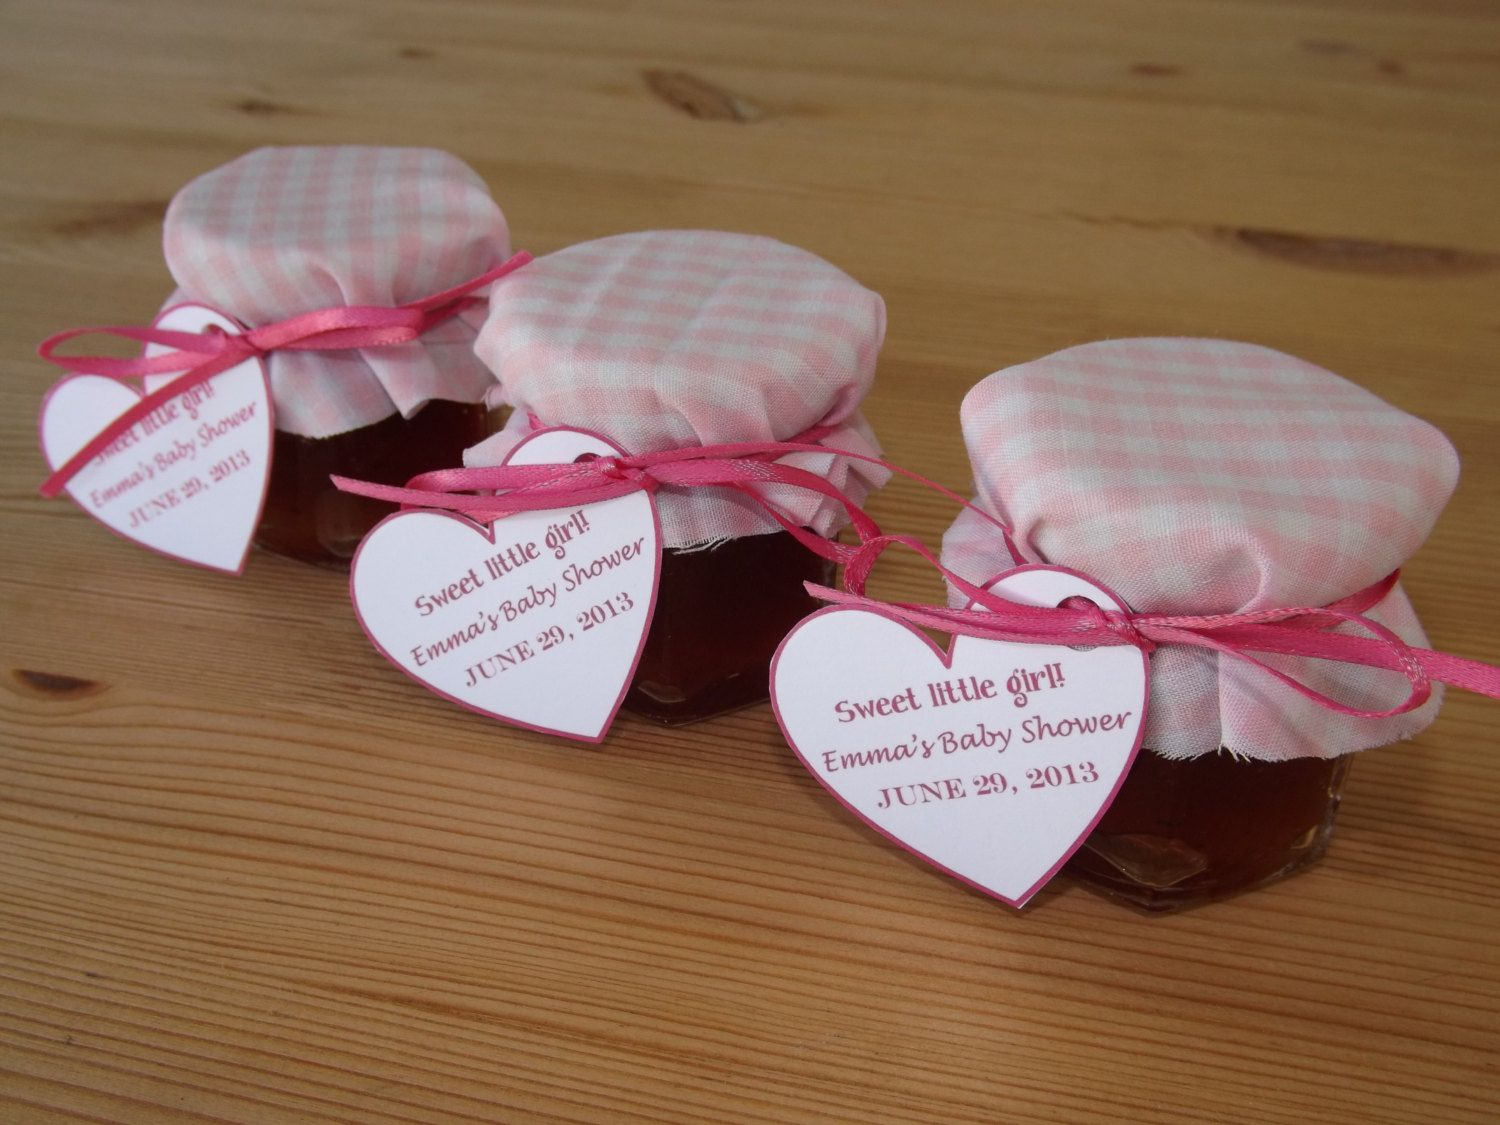 Cute sayings for jam jars baby shower google search - Baby shower invitations and decorations ...